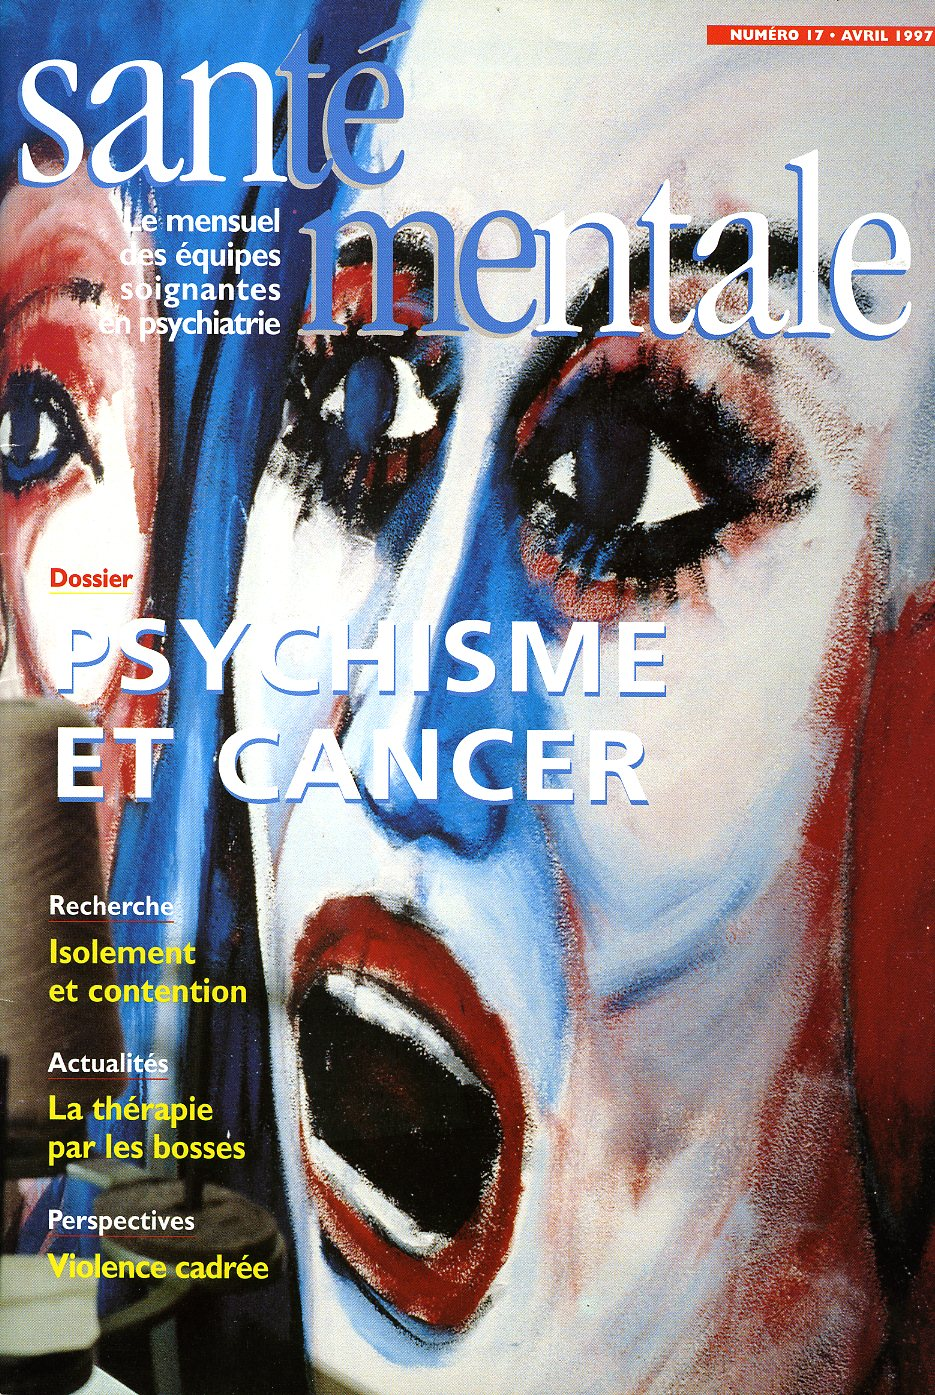 Couverture N°17 Avril 1997